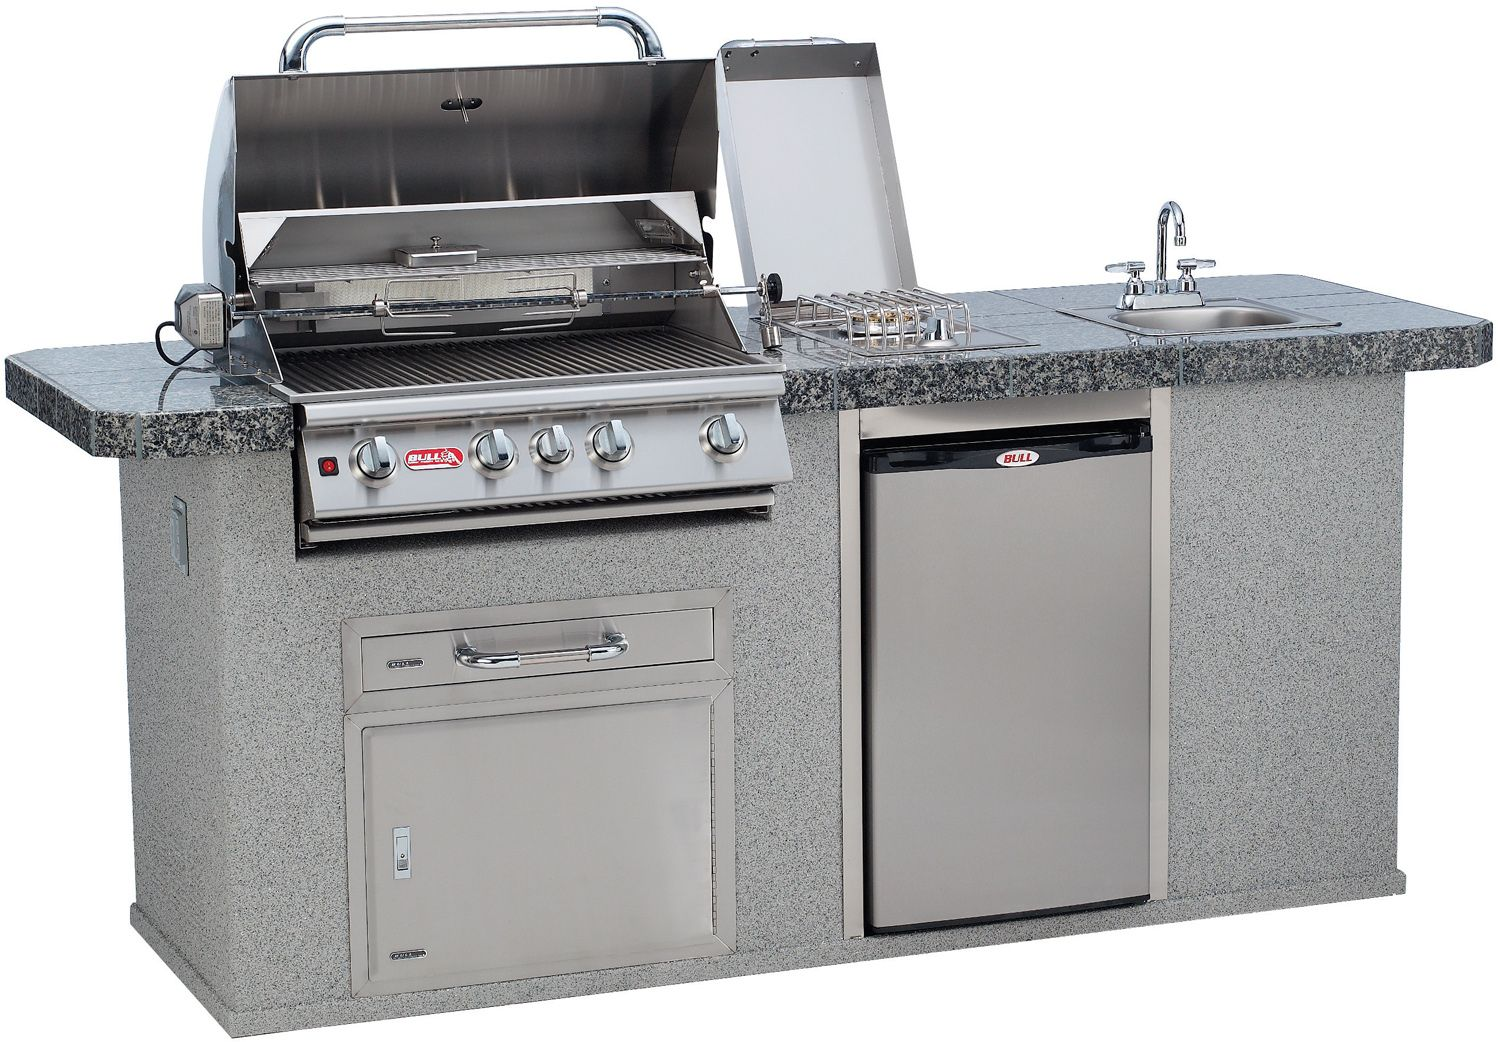 Bull Bbq Outdoor Kitchen Complete Bbq Island Comes Standard With A 30 Inch Built In Ga Outdoor Kitchen Grill Outdoor Kitchen Countertops Outdoor Kitchen Island